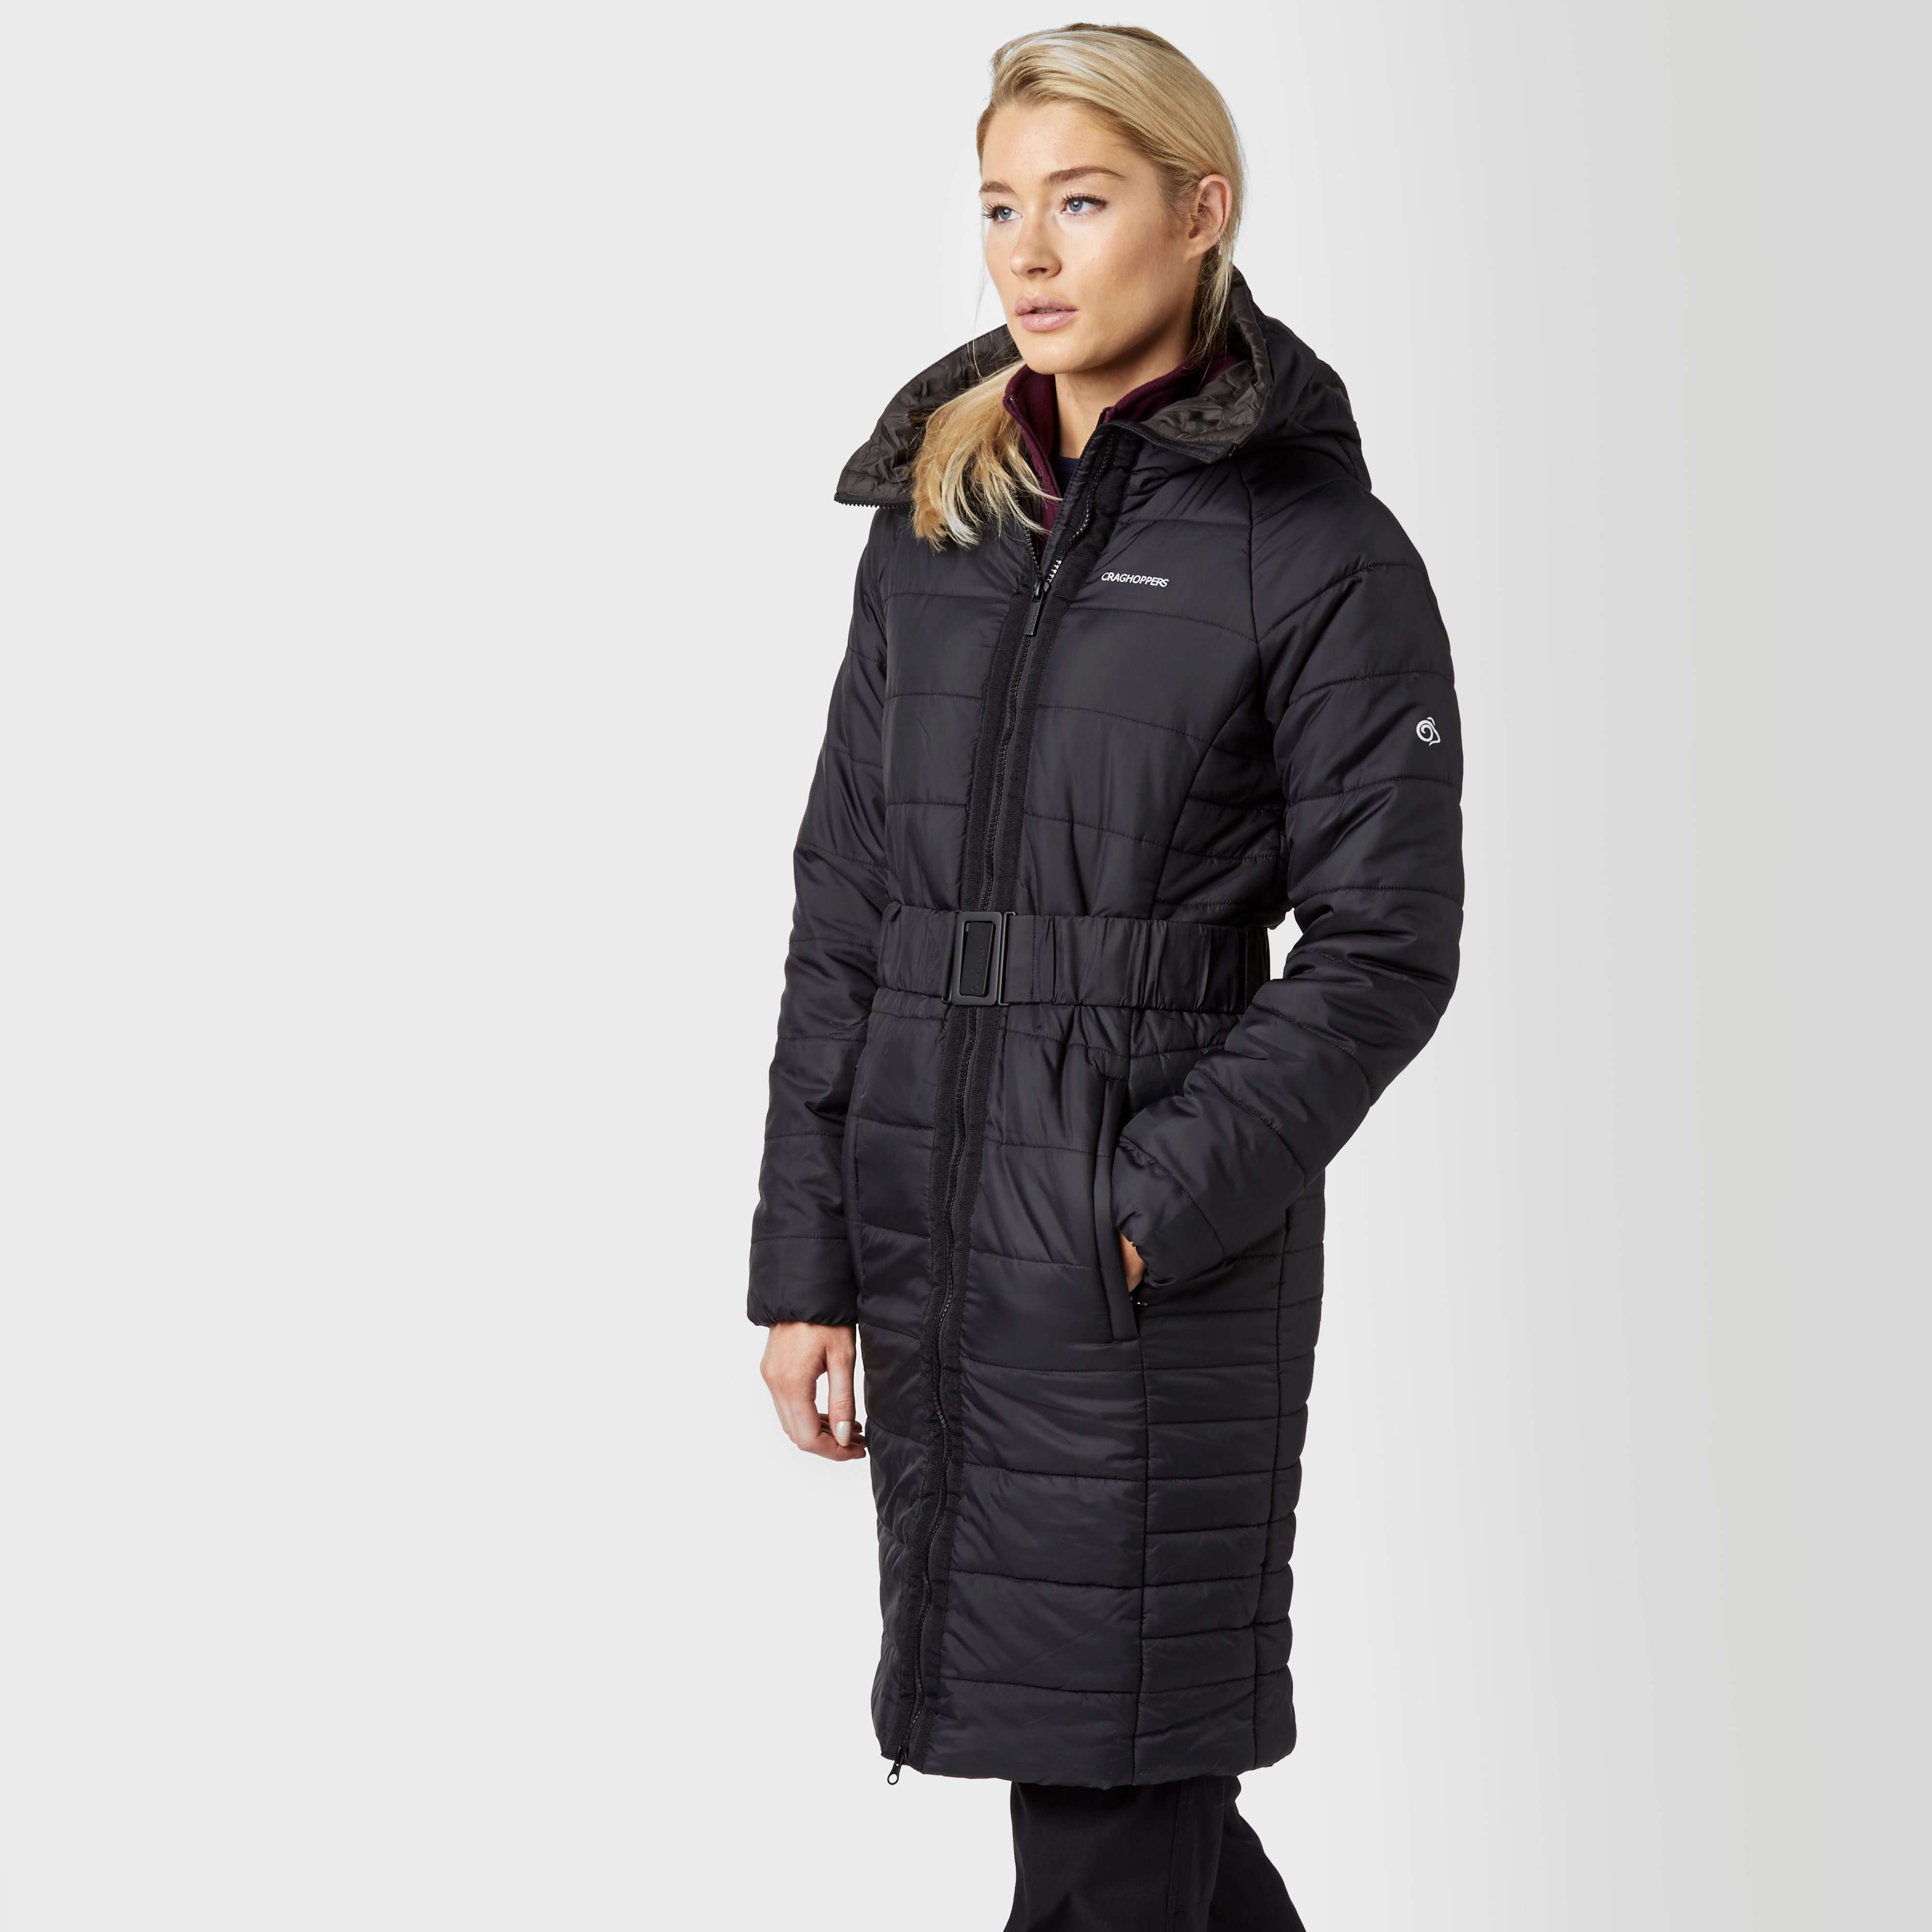 CRAGHOPPERS Women's Romy Insulated Jacket